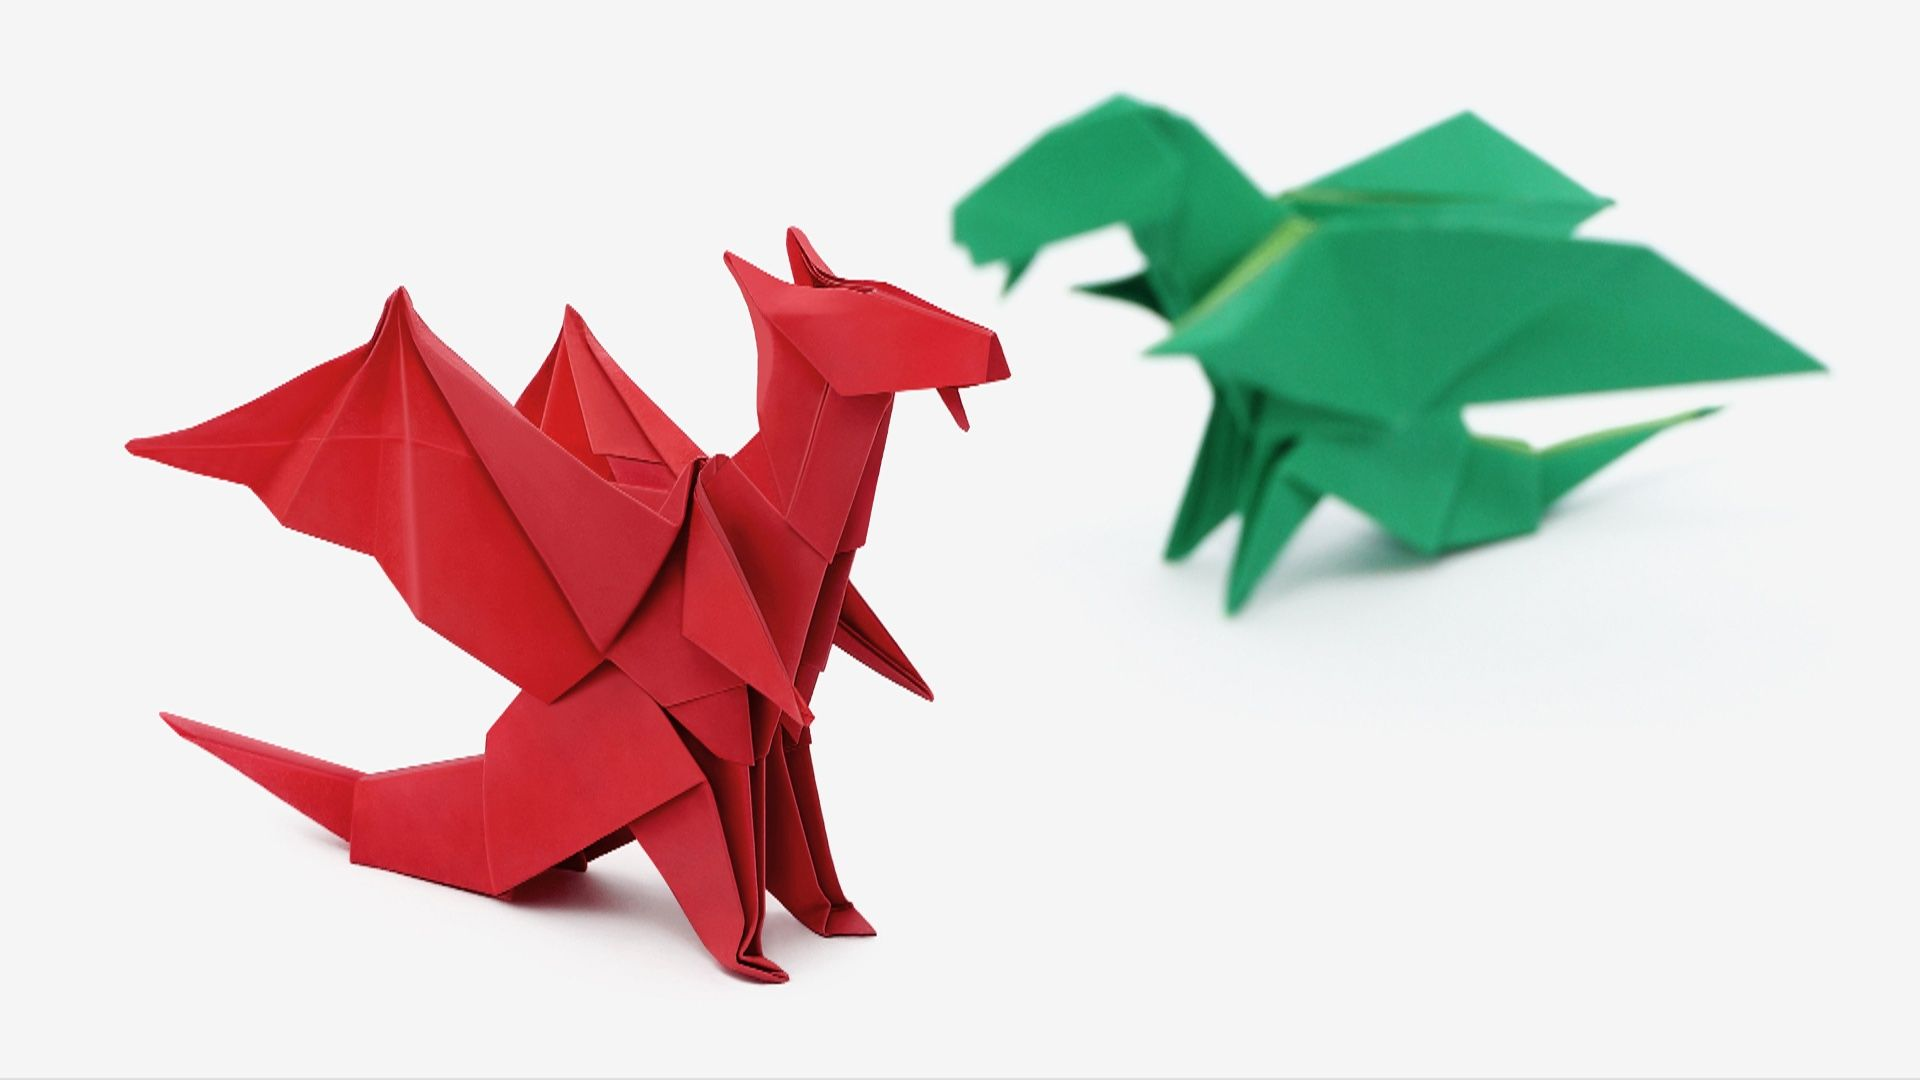 Origami Artist And Youtuber Here You Can See Some Of My Work And Learn How To Fold My Creations On My Videos And Diagrams Origami Tutorial Origami For Beginners Origami Easy